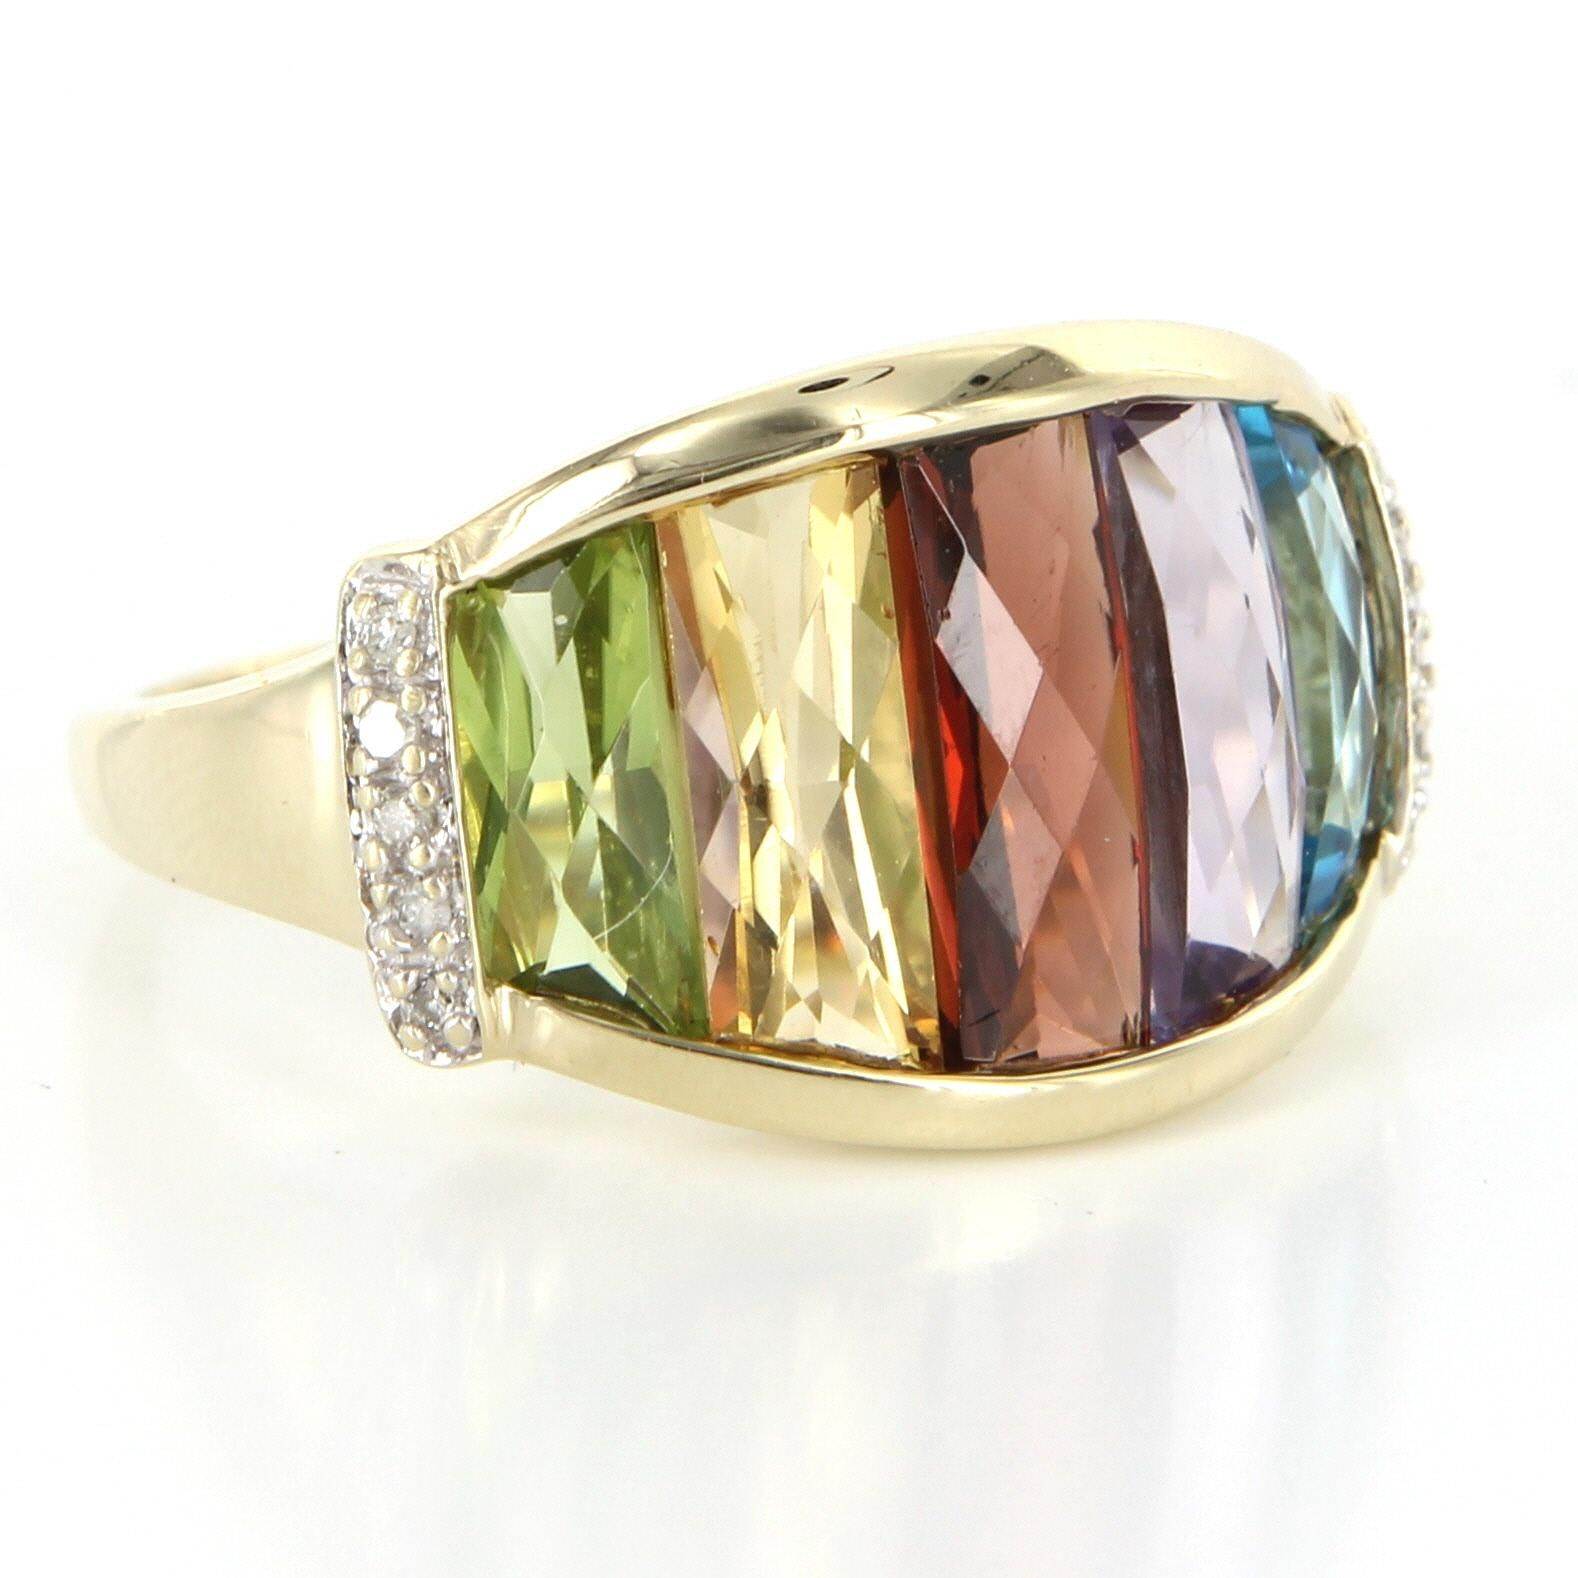 Rainbow Gemstone Diamond Cocktail Ring 10 Karat Gold Vintage Fine Estate Jewelry Pre Owned Jewelry Estate Jewelry Gemstones